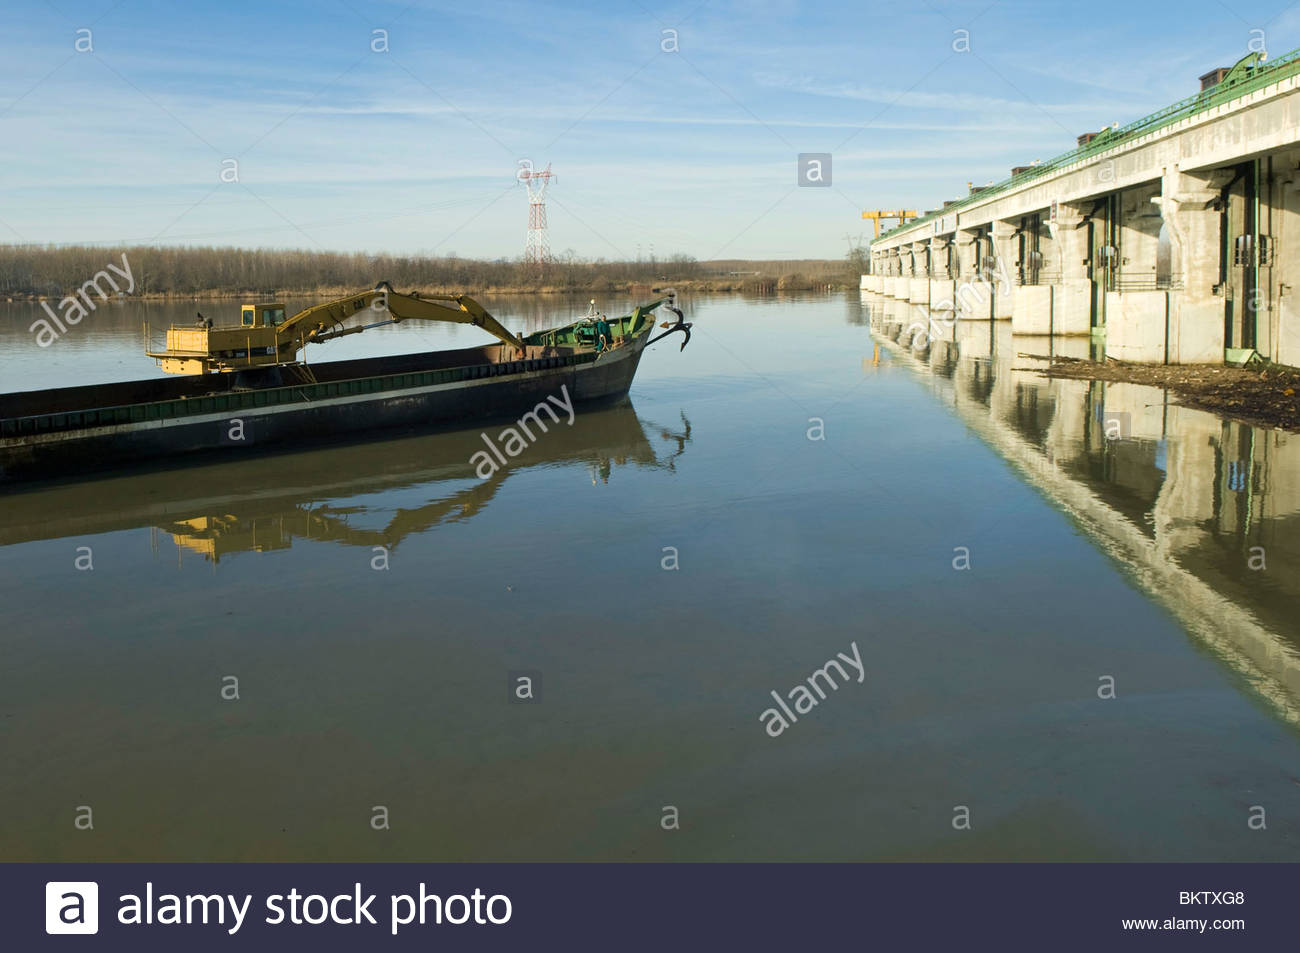 Oil pollution in the Po river near Enel power station,isola serafini,emilia romagna,italy - Stock Image